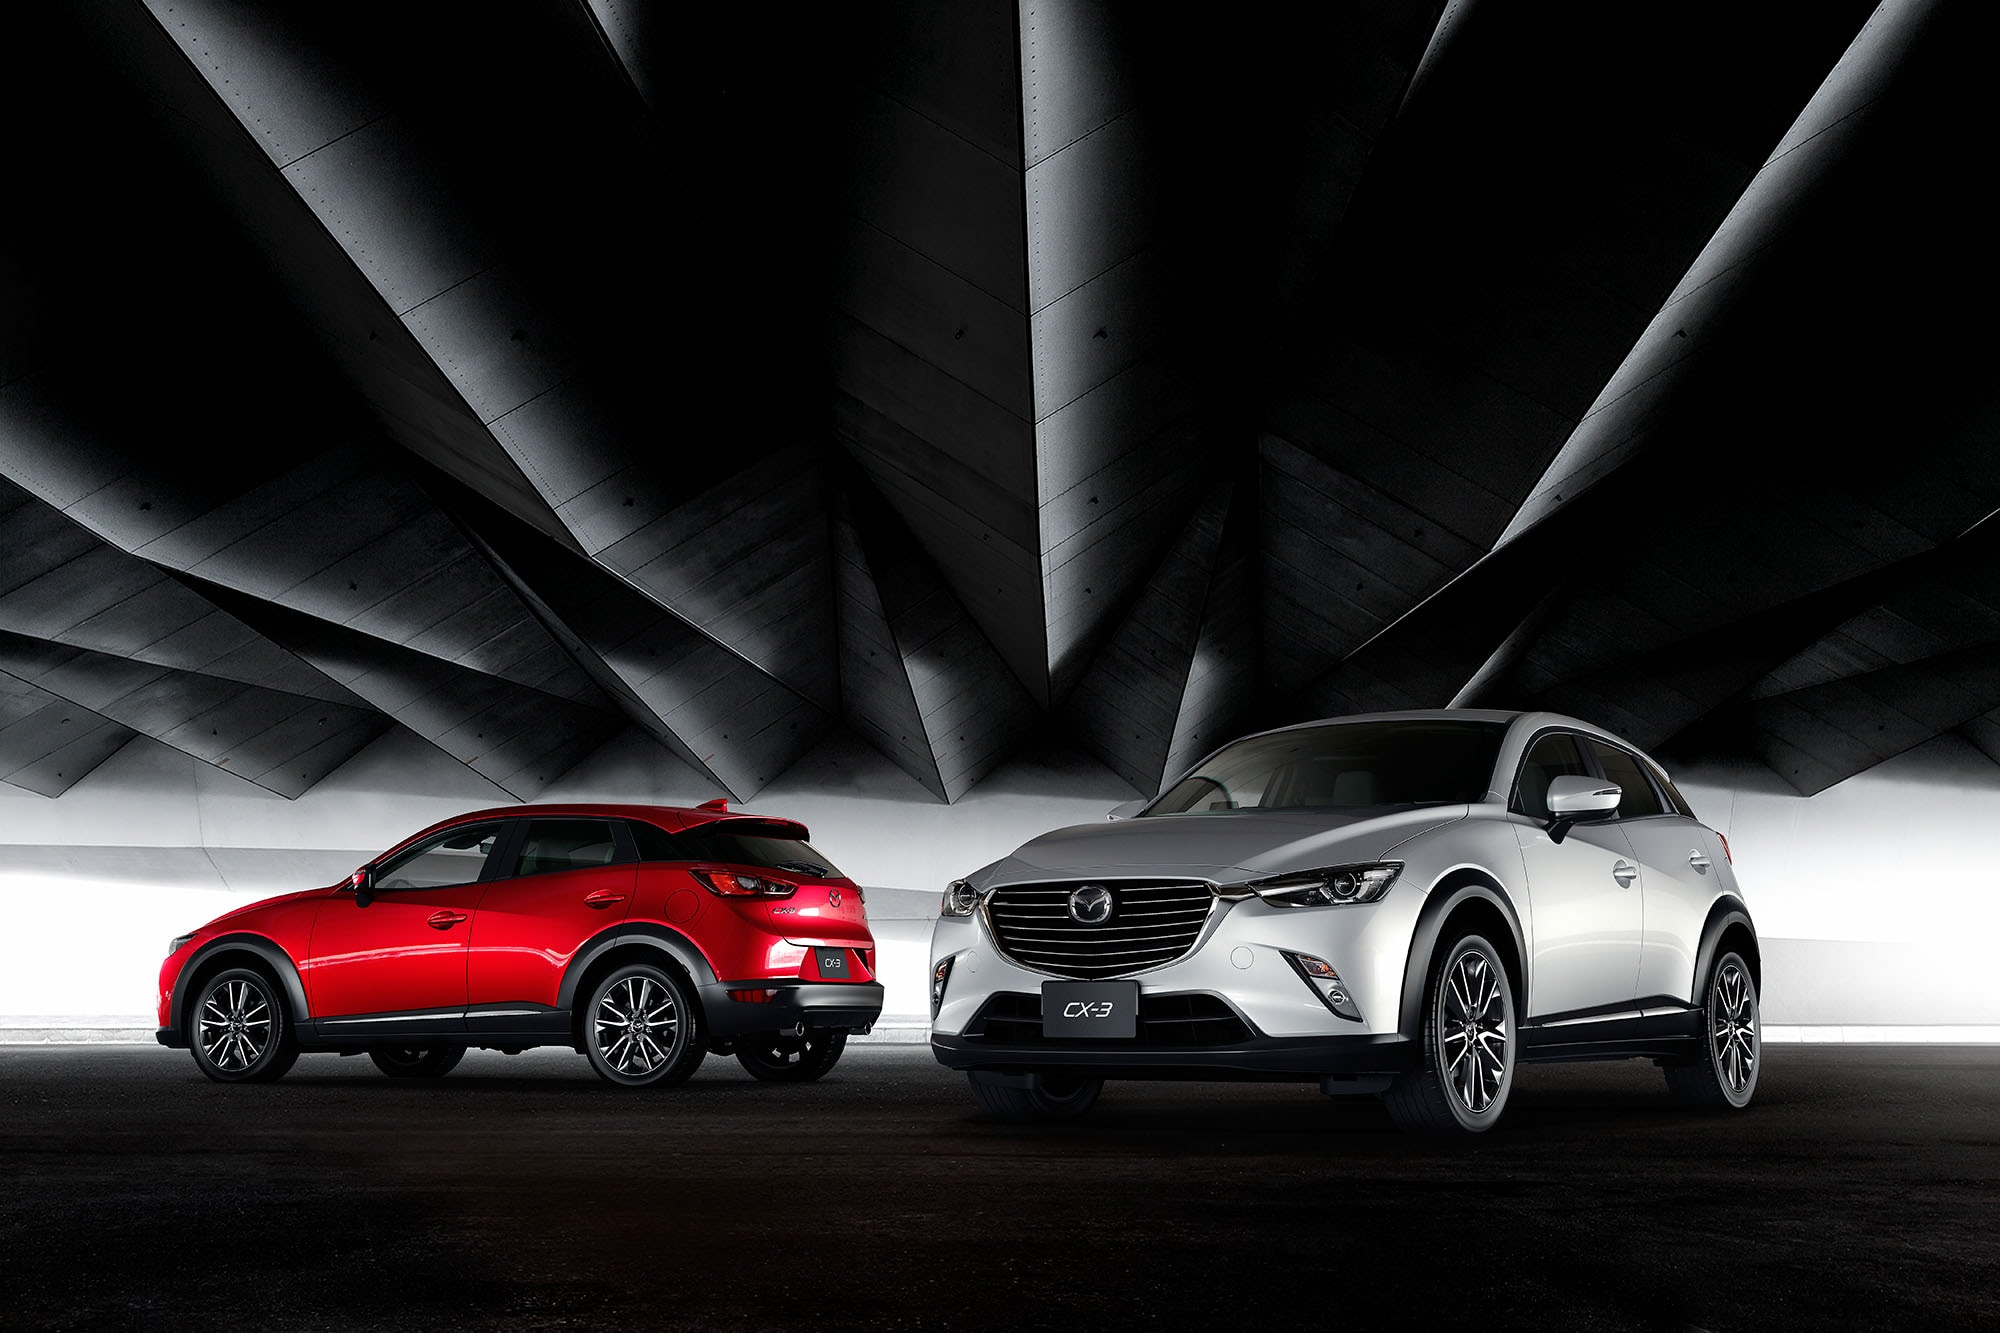 At Culver City Mazda Current Mazda Owners can get $500 Owner Loyalty Cash